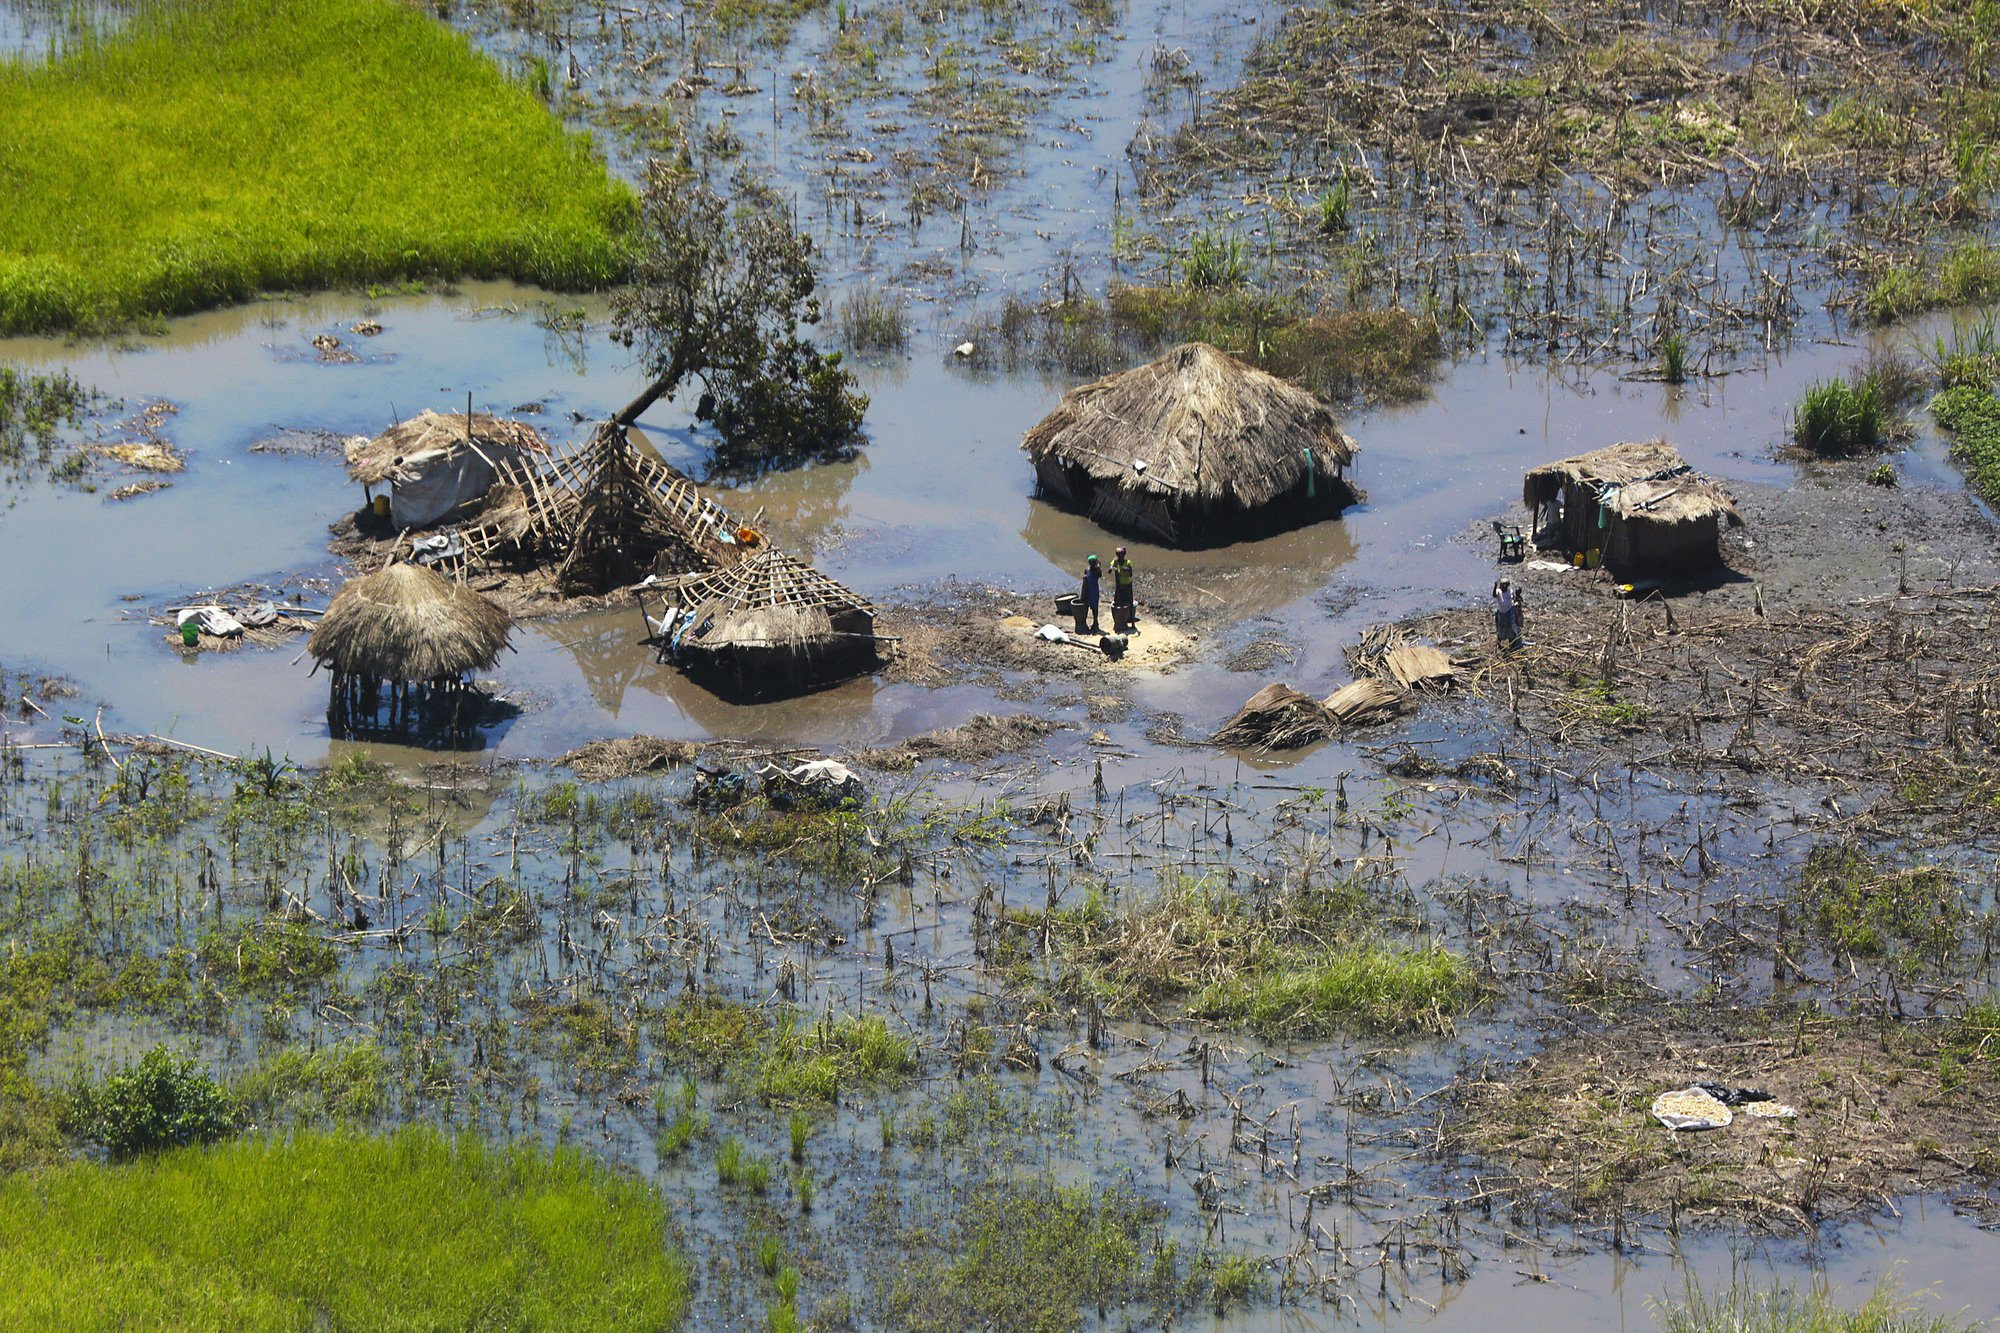 Cyclone Idai, killing at least 700, one of worst catastrophes in Africa: UN chief